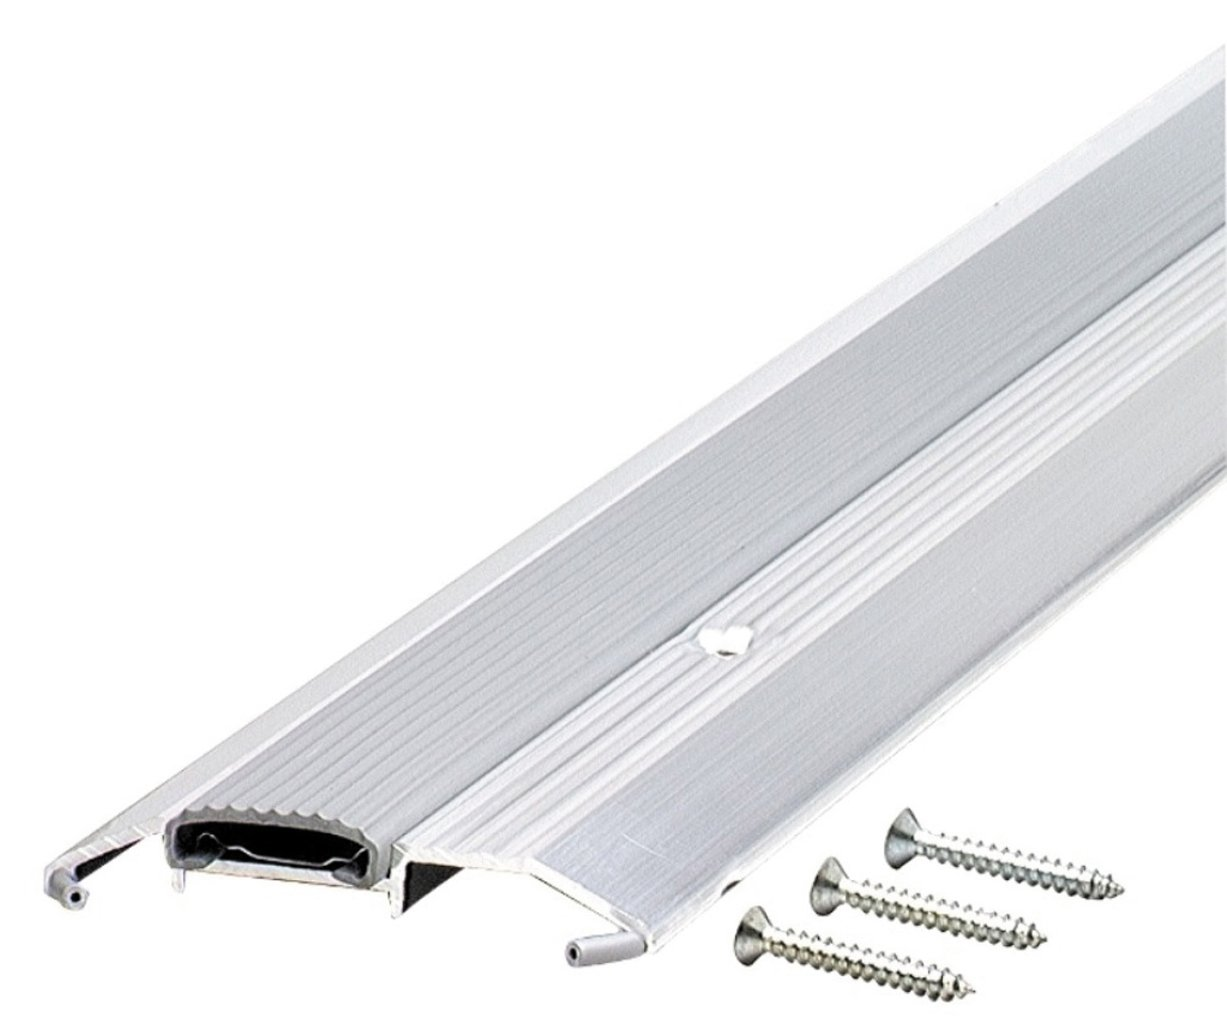 M-D Building Products 8102 3-3/4-by-3/4-by-36-Inch Deluxe Low Threshold with Vinyl Seal, Aluminum